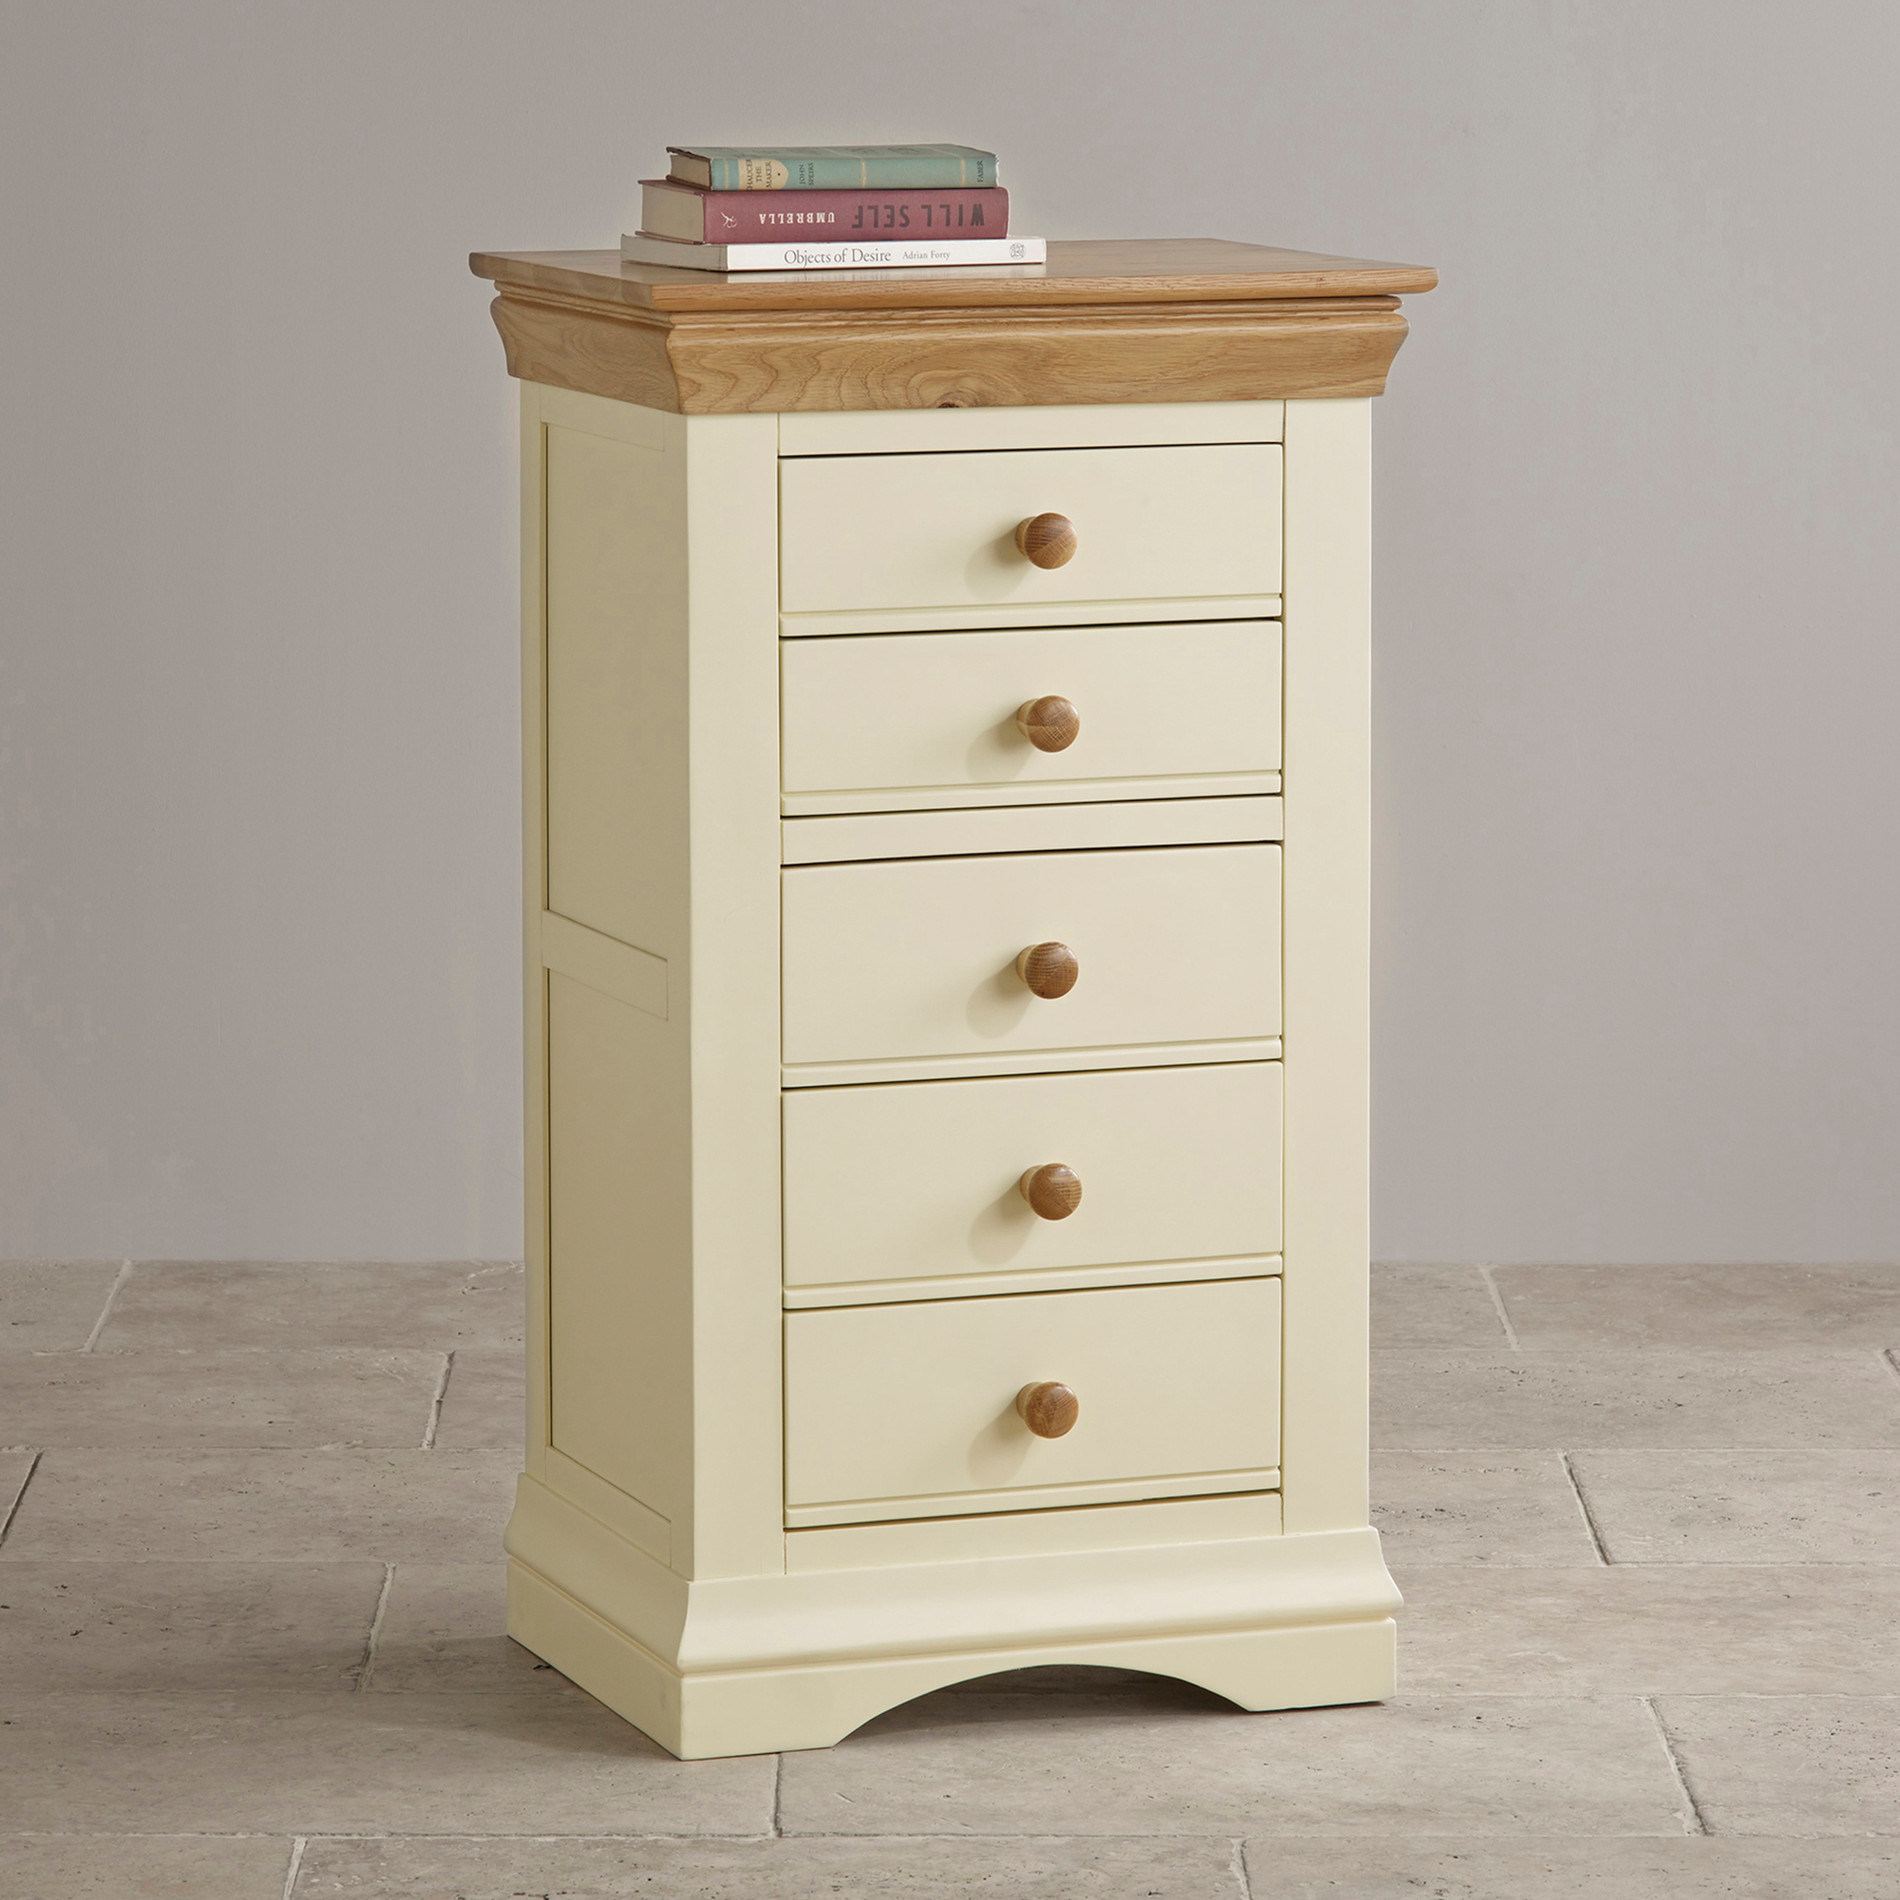 Painted White Oak Solid Wood 5 Drawer